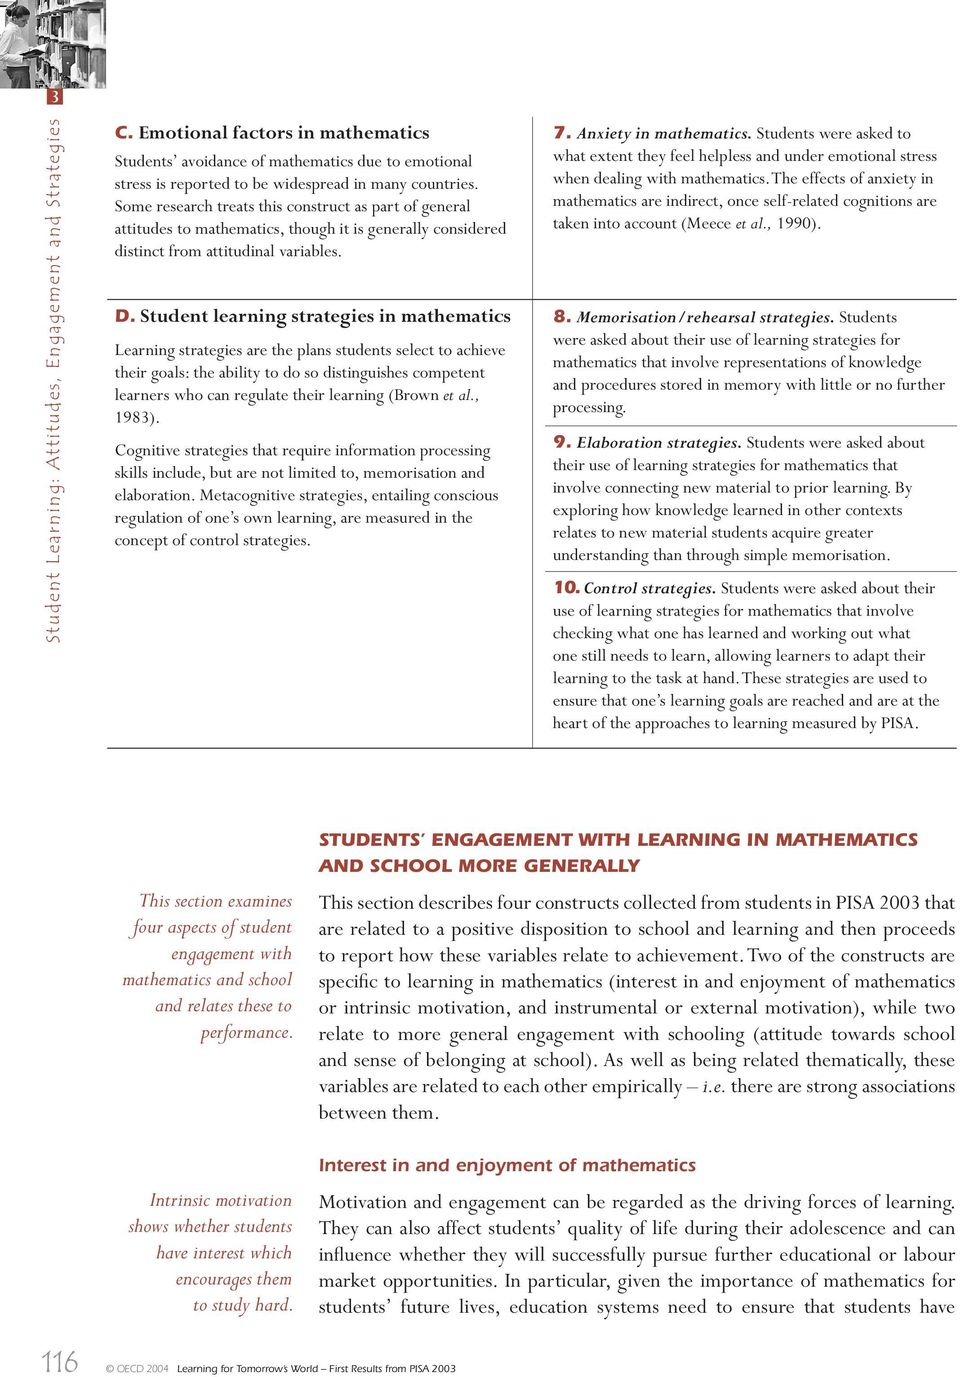 Student Learning: Attitudes, Engagement and Strategies - PDF